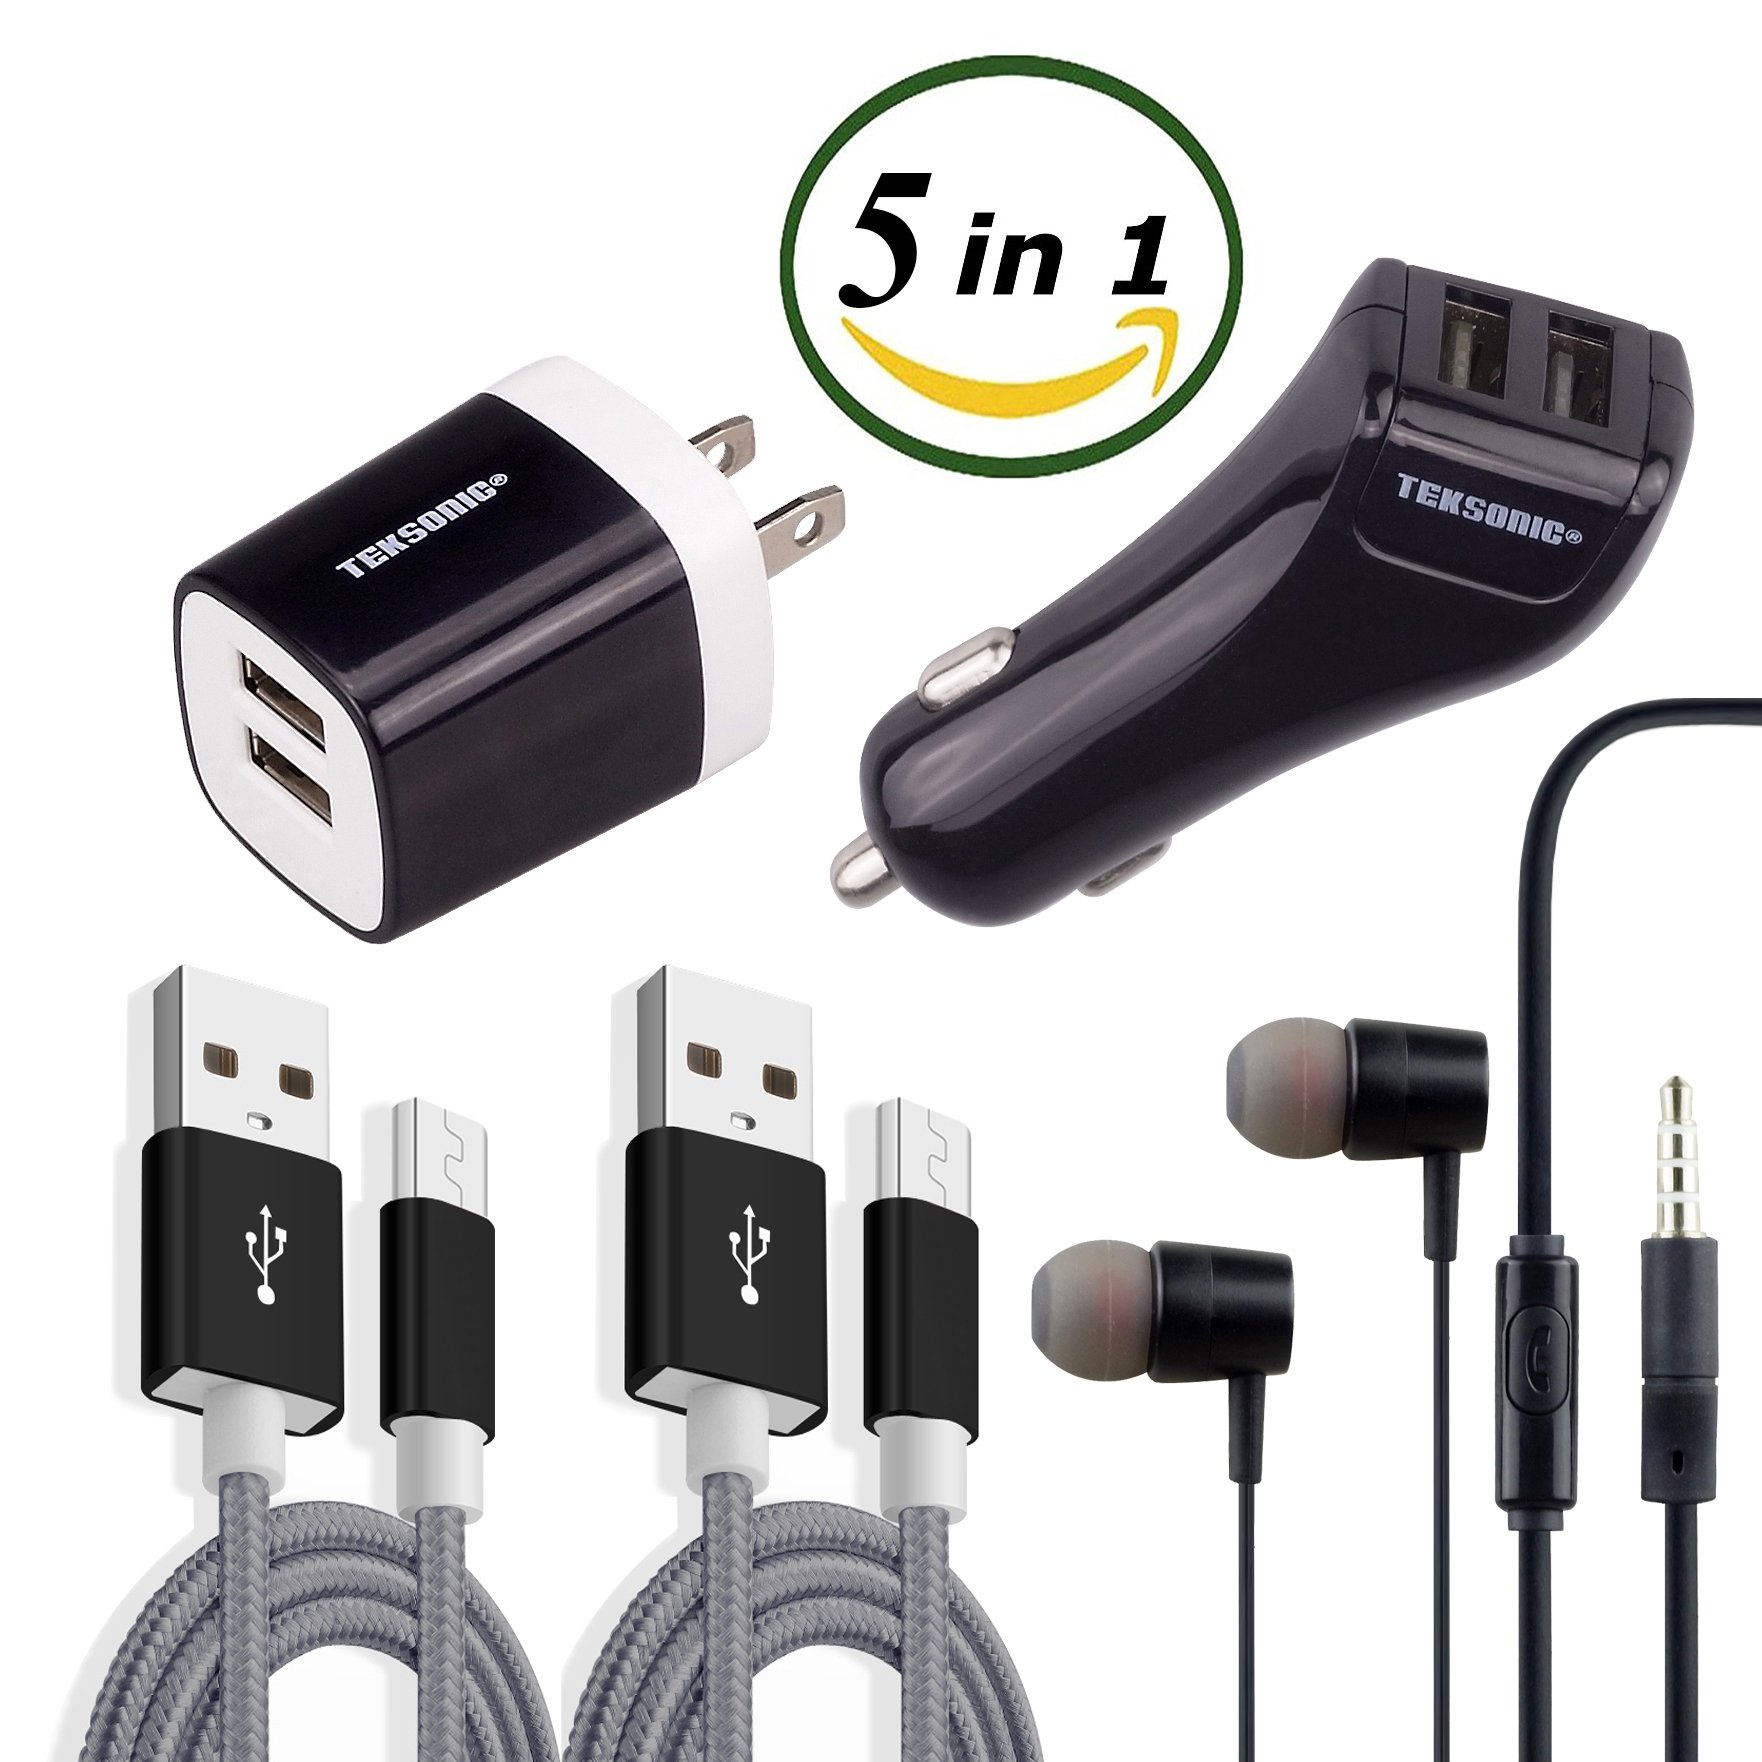 TekSonic [5 in 1] Charger Bundle with Dual 2.1 Amp Wall Charger, Dual Car Charger, 2 Braided 3.3ft Micro USB cable charge sync cords and Earphones - Accessory Kit for Android, Samsung, LG, HTC